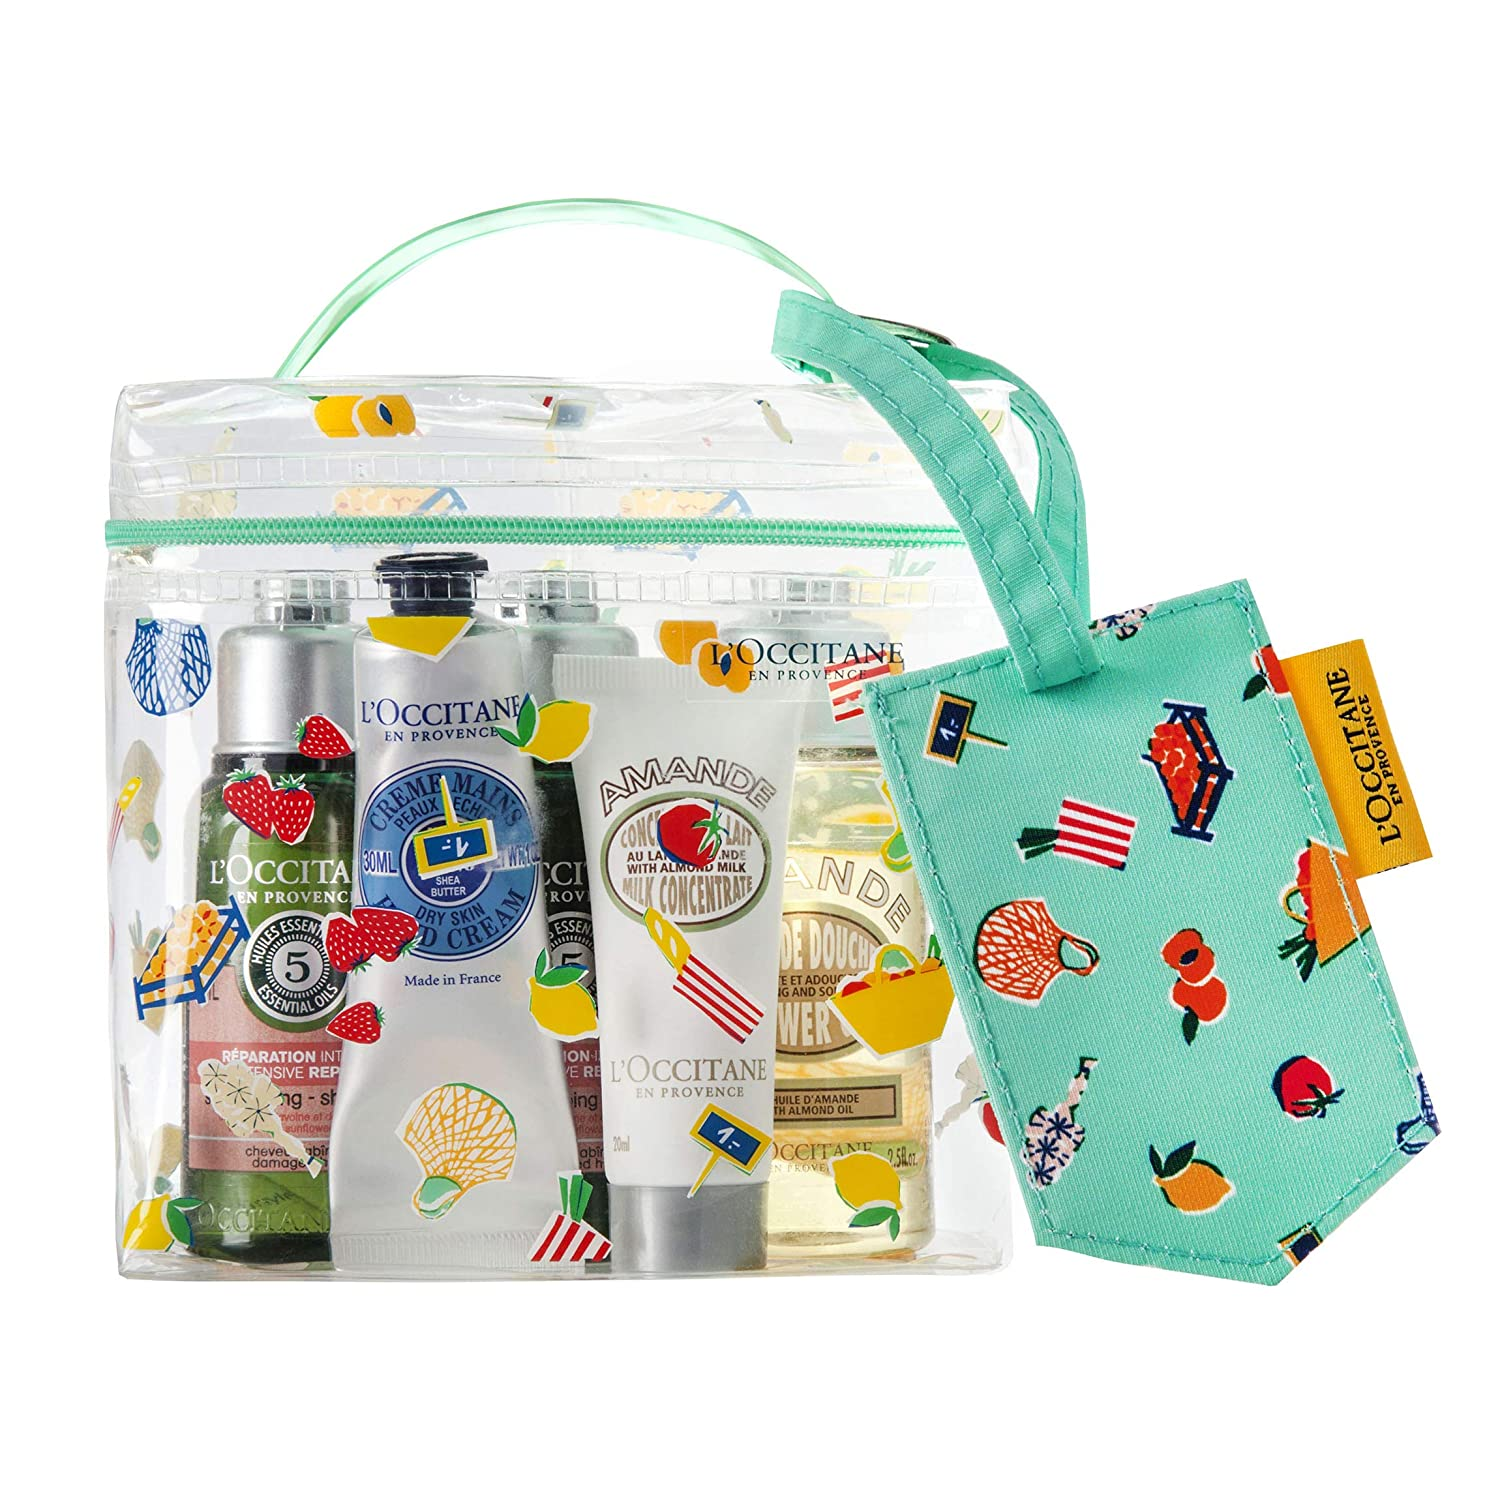 LOccitane 5-Piece Travel Beauty Favorites Kit of Shampoo  Conditioner  Shower Oil  Lotion  Hand Cream with Luggage Tag and Vanity